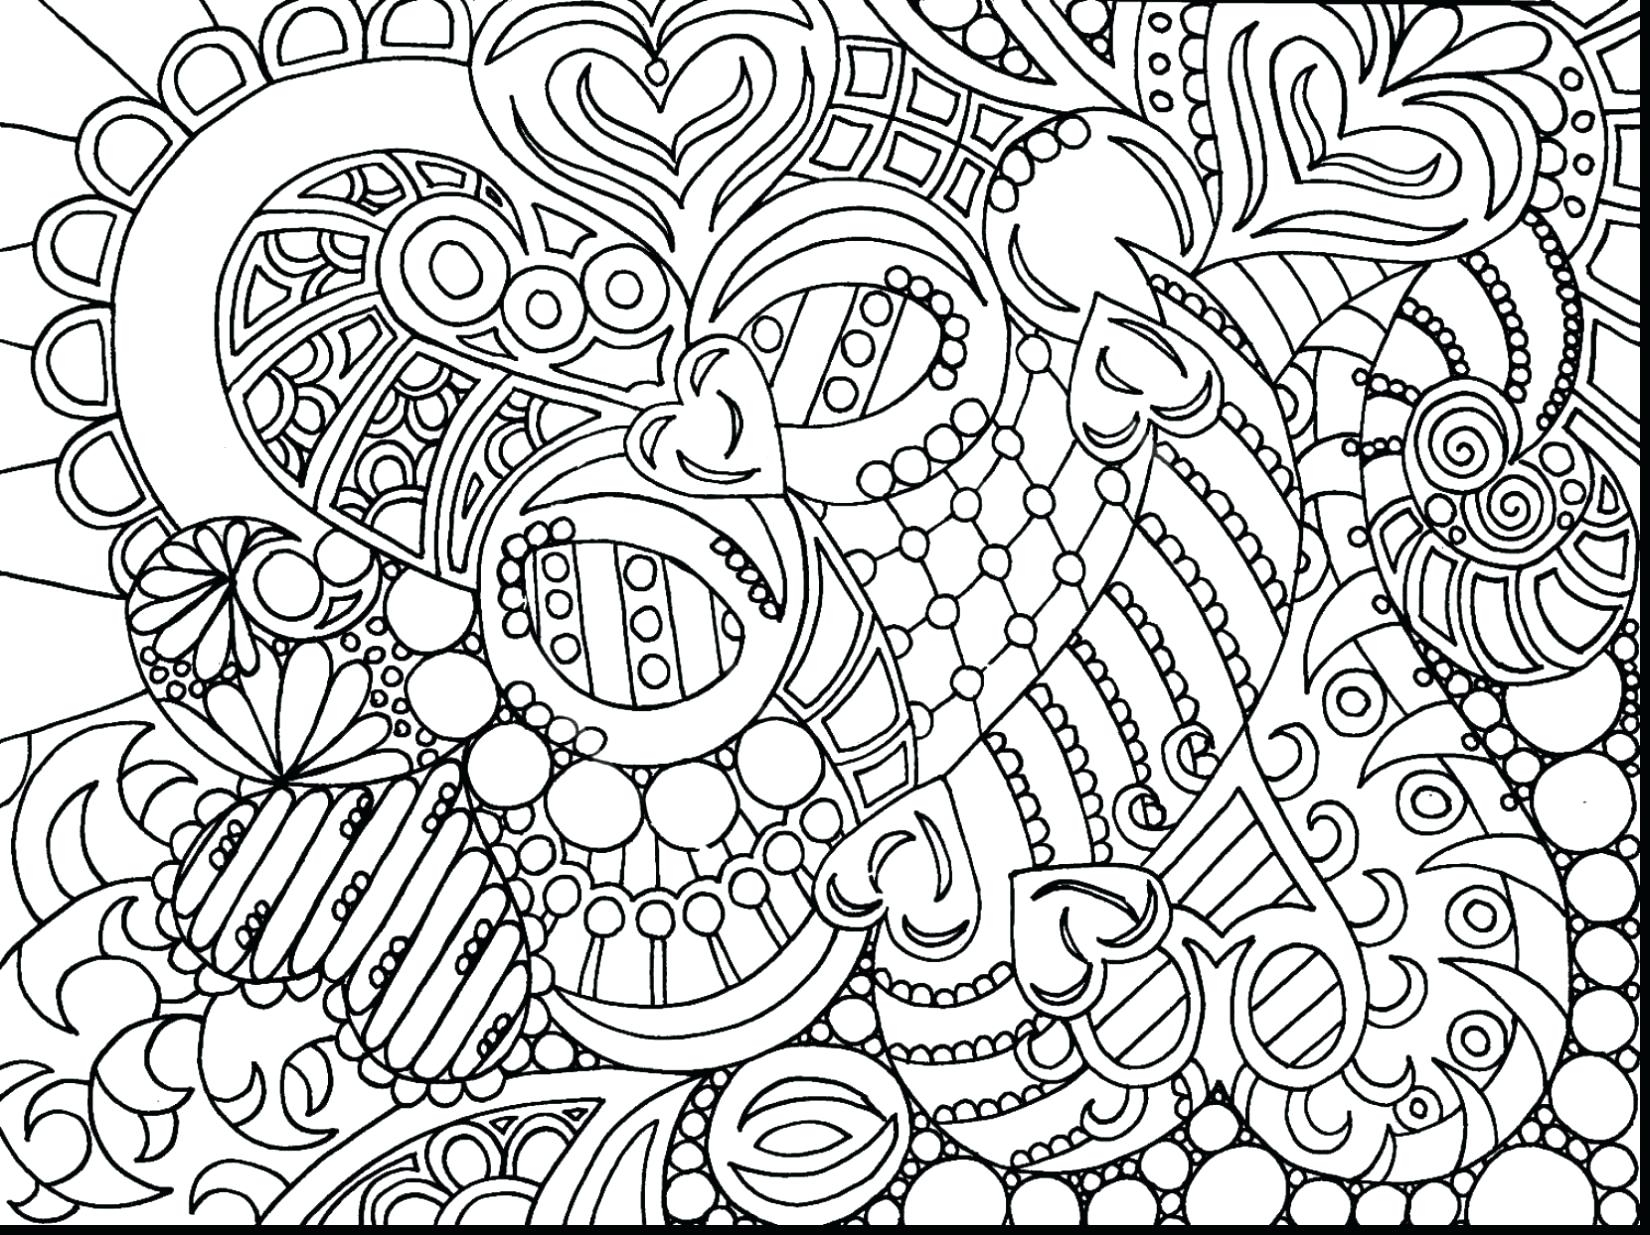 1650x1235 Zachr Page Lisa Frank Coloring Pages Peace Sign Coloring